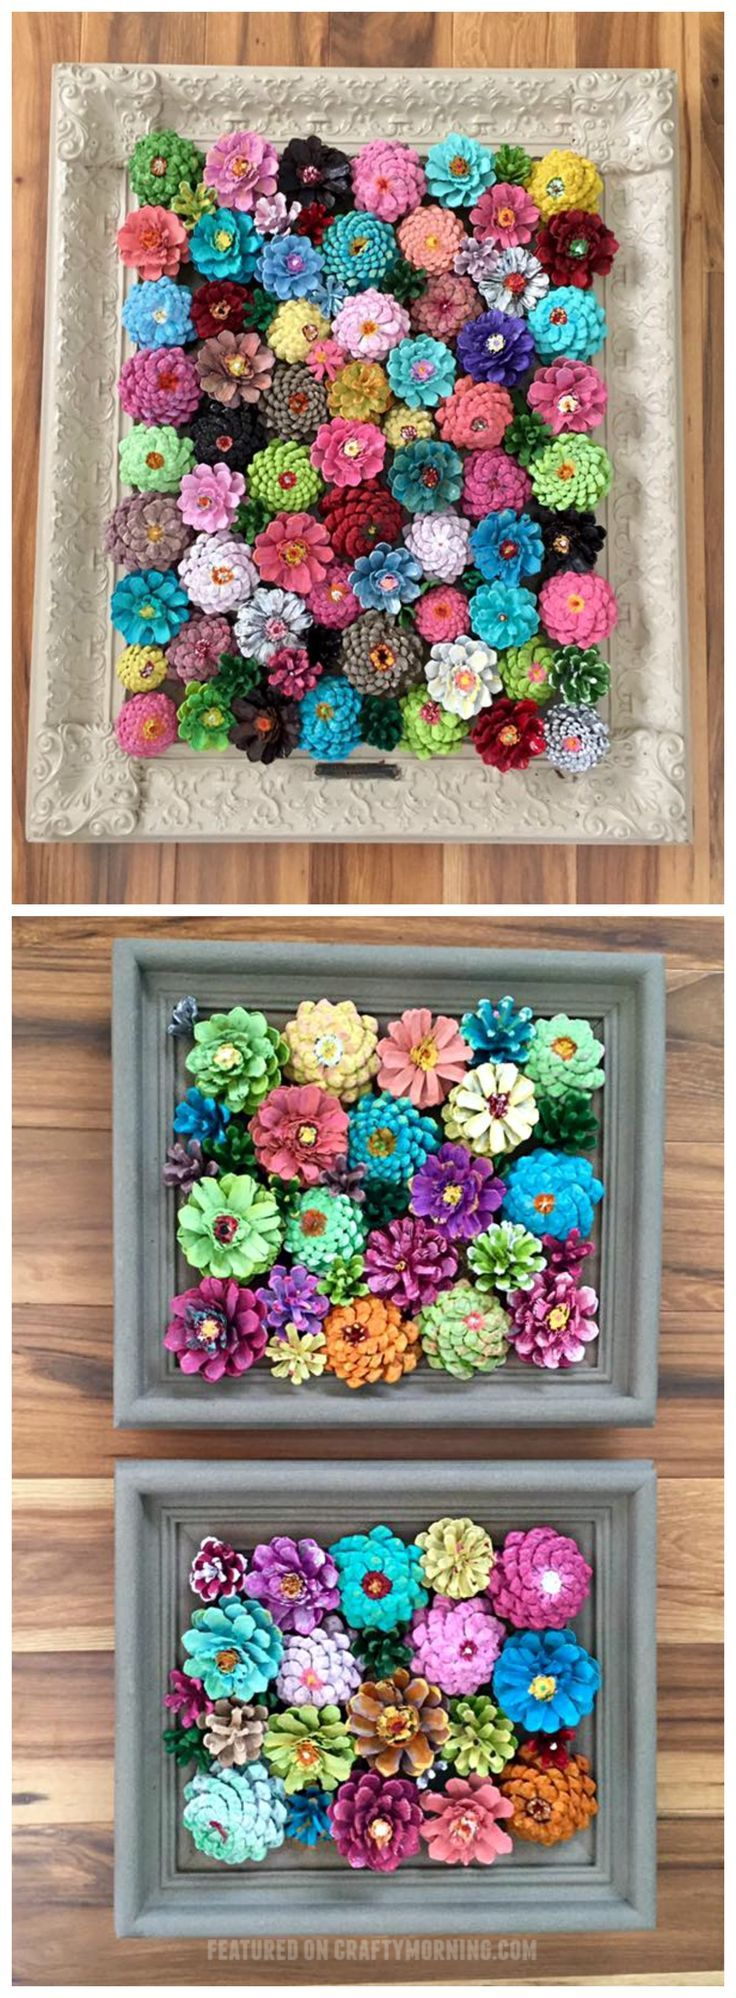 These pinecone flowers in a frame are so pretty! Perfect craft for summer or spring. Makes a beautiful wall art piece. - This would be pretty with paper flowers too!